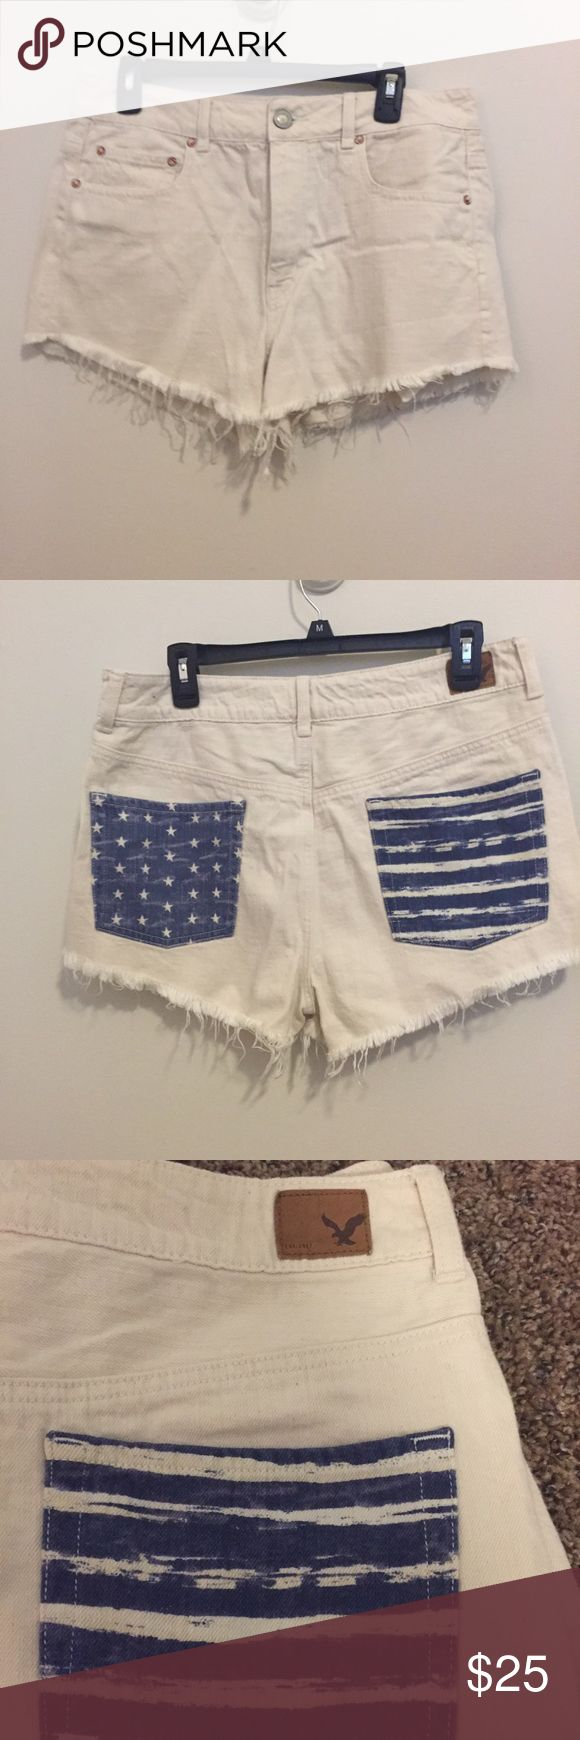 American Eagle USA Shorts White denim cutoff shorts. Gently worn, perfect condition. Make me an offer :) American Eagle Outfitters Shorts Jean Shorts